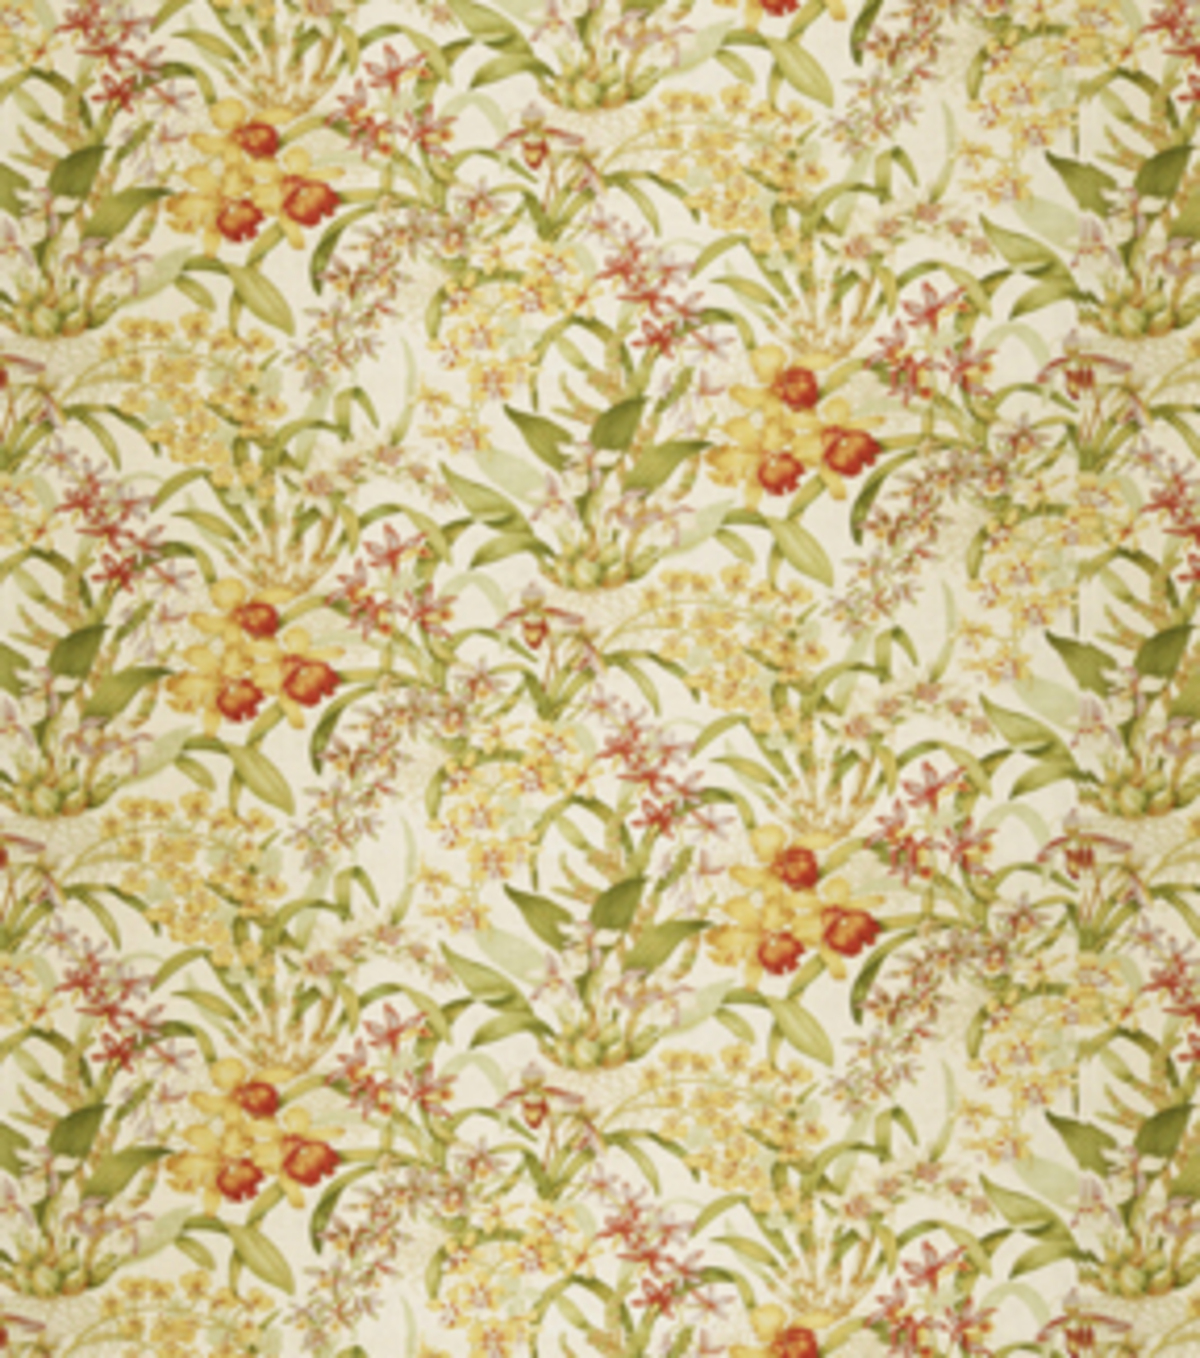 Home Decor 8\u0022x8\u0022 Fabric Swatch-Eaton Square Mercantile Orchid